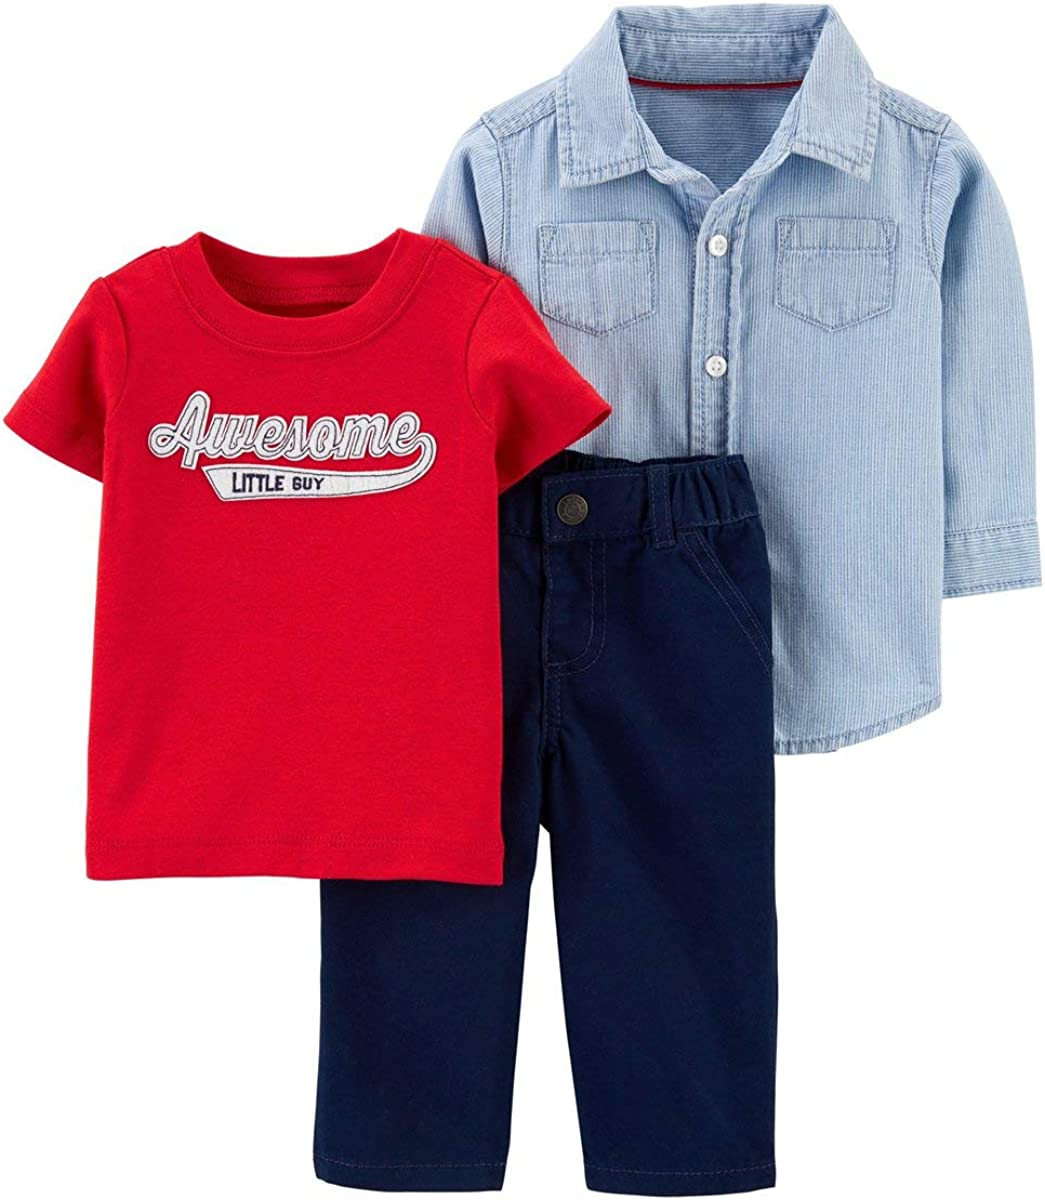 Carter's Baby Boys' 3-Pc Awesome Little Guy Pant Set, Blue, 12m